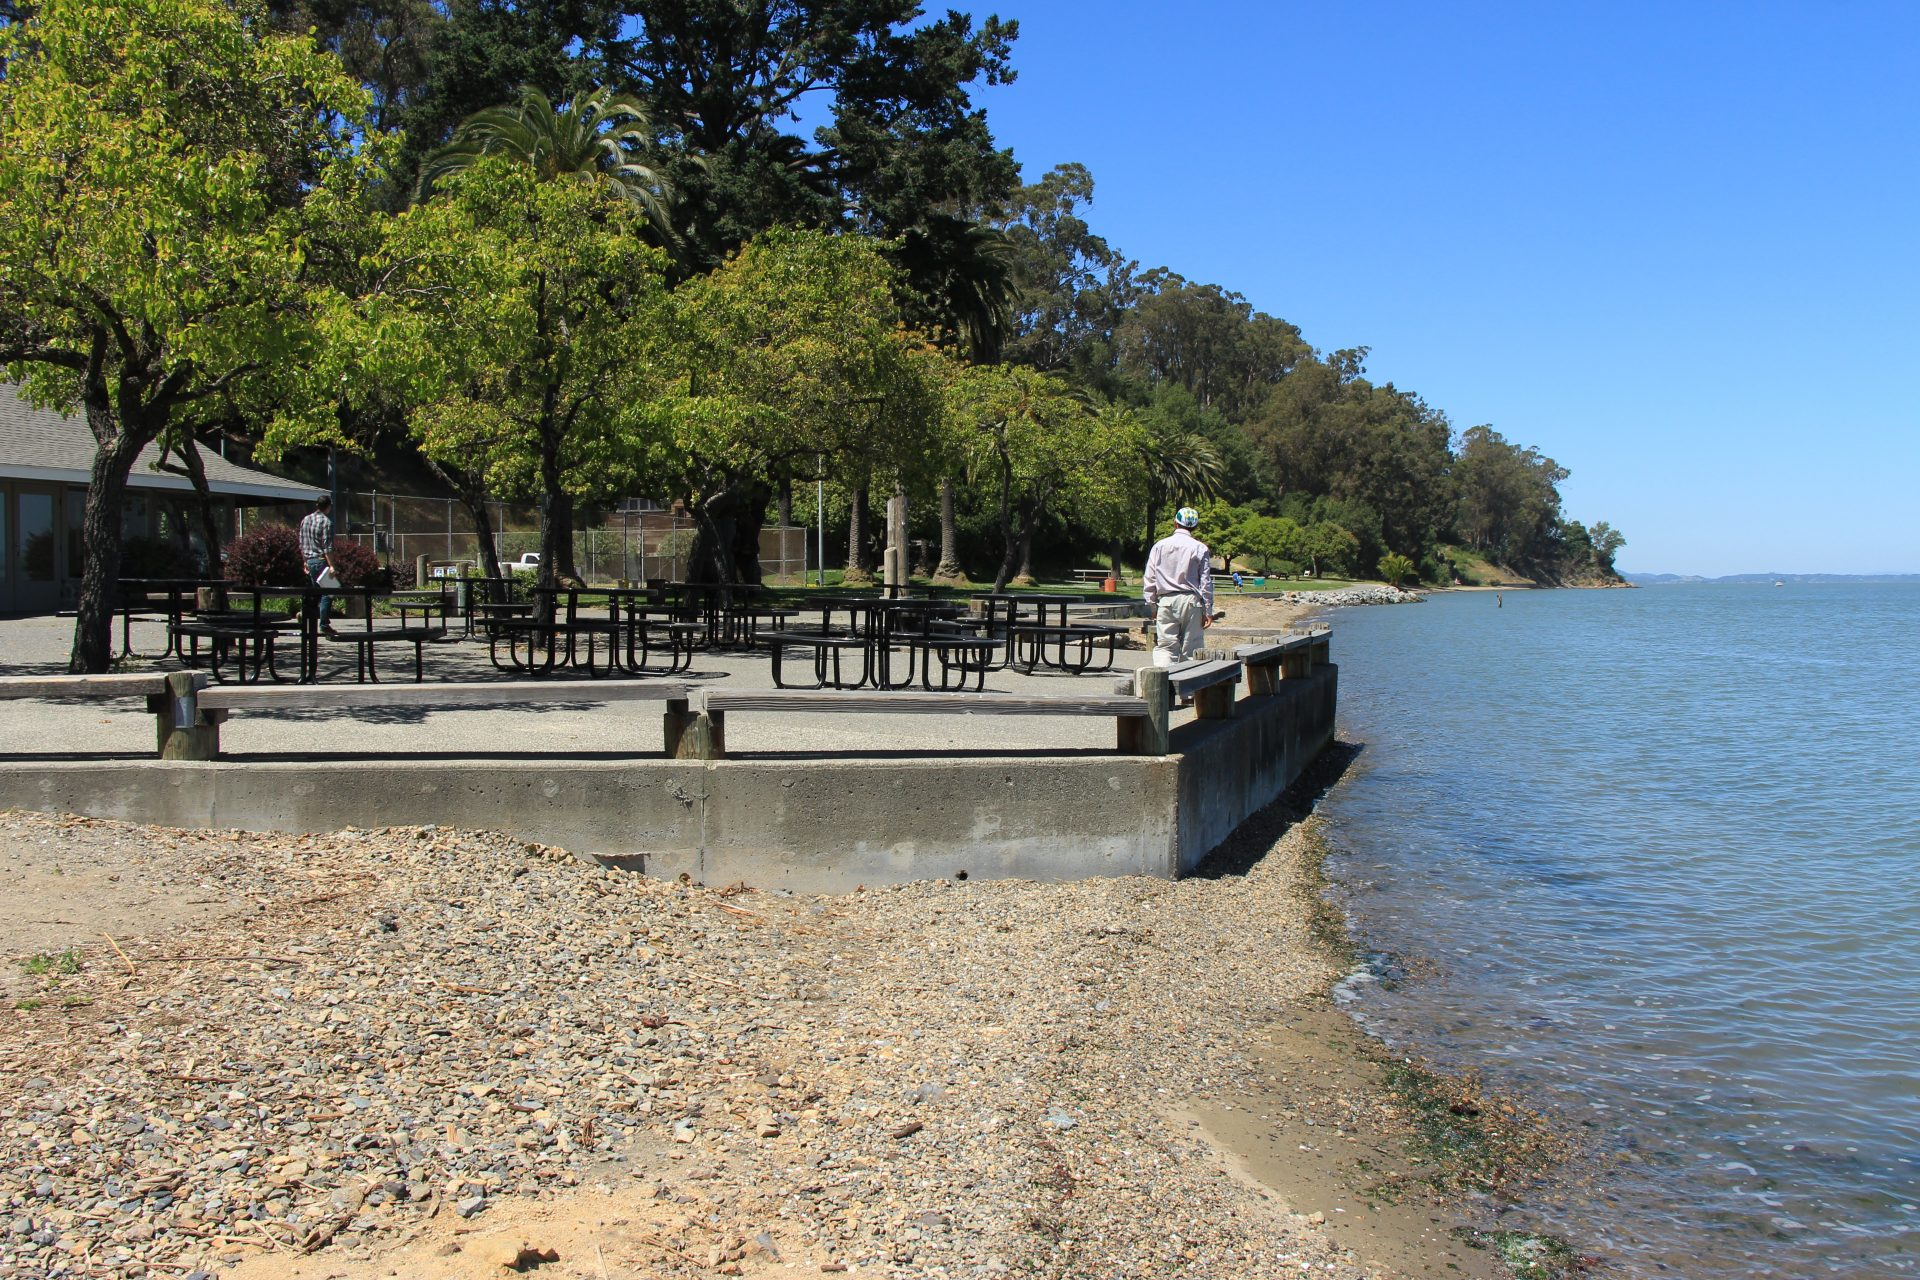 person standing on concrete platform surrounded by picnnic tables. Retaining wall around platform descends into bay water